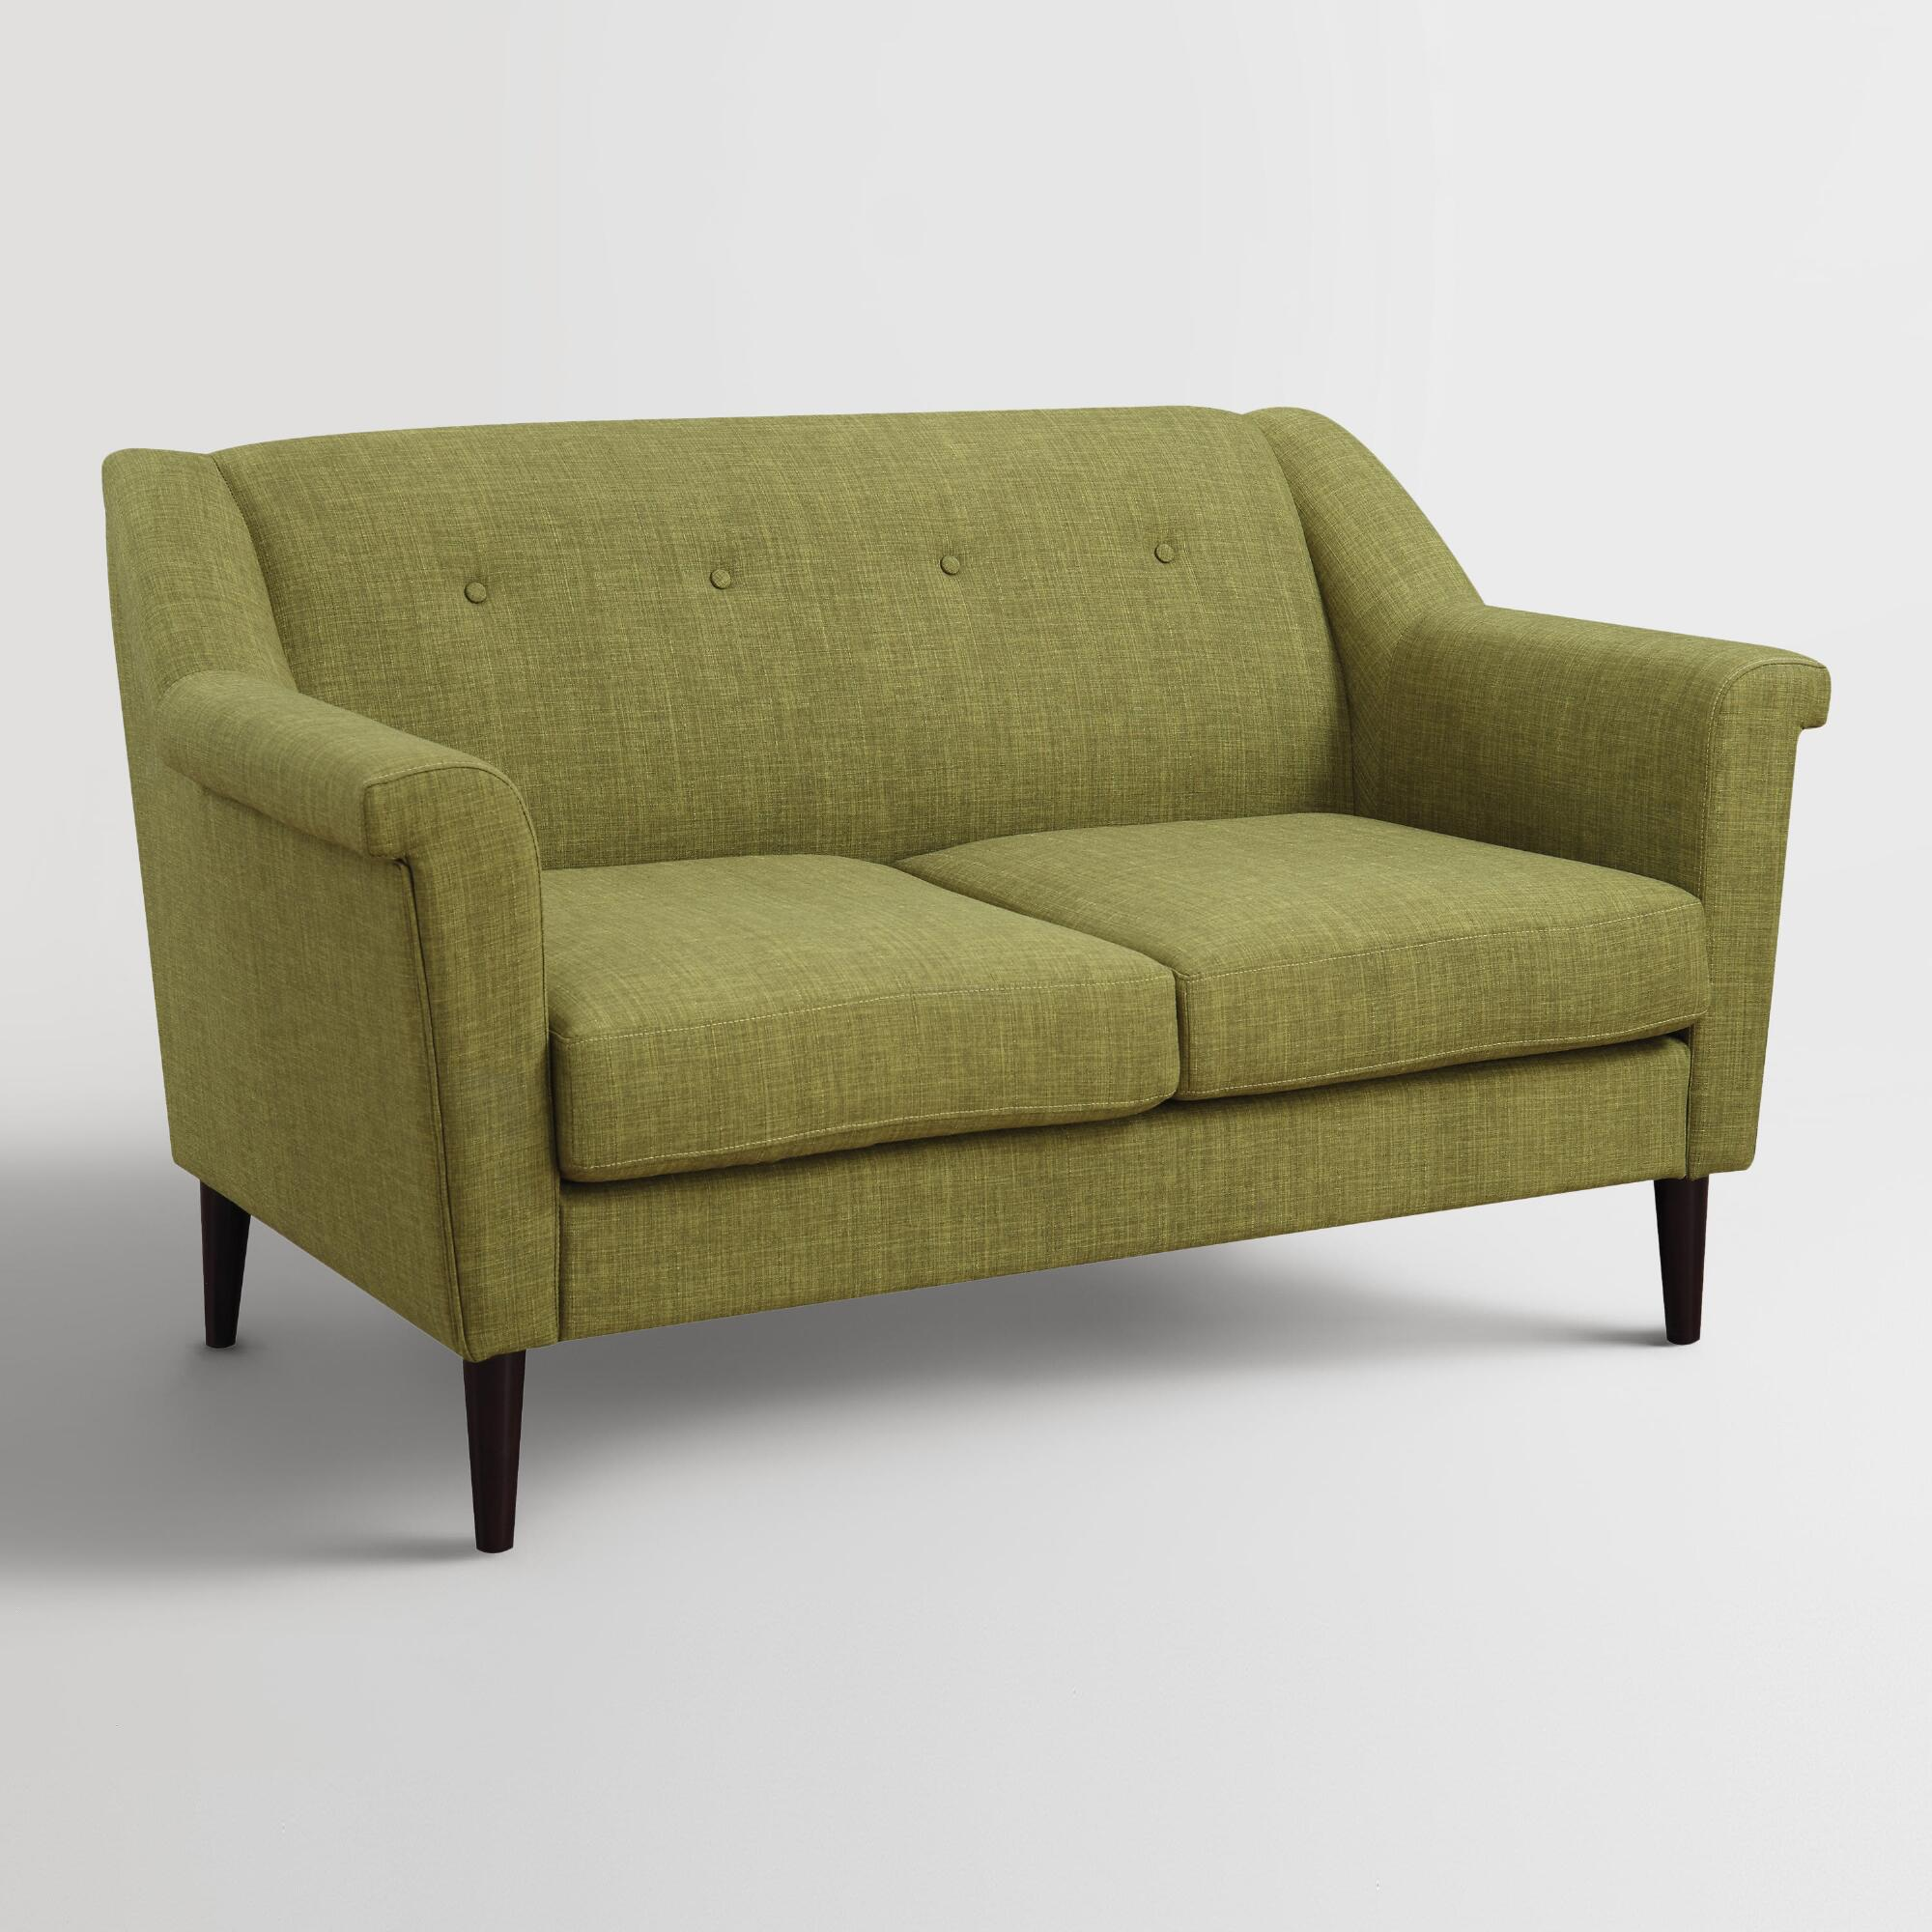 Buy Green Navarre Upholstered Loveseat By World Market With Discount And Free Delivery